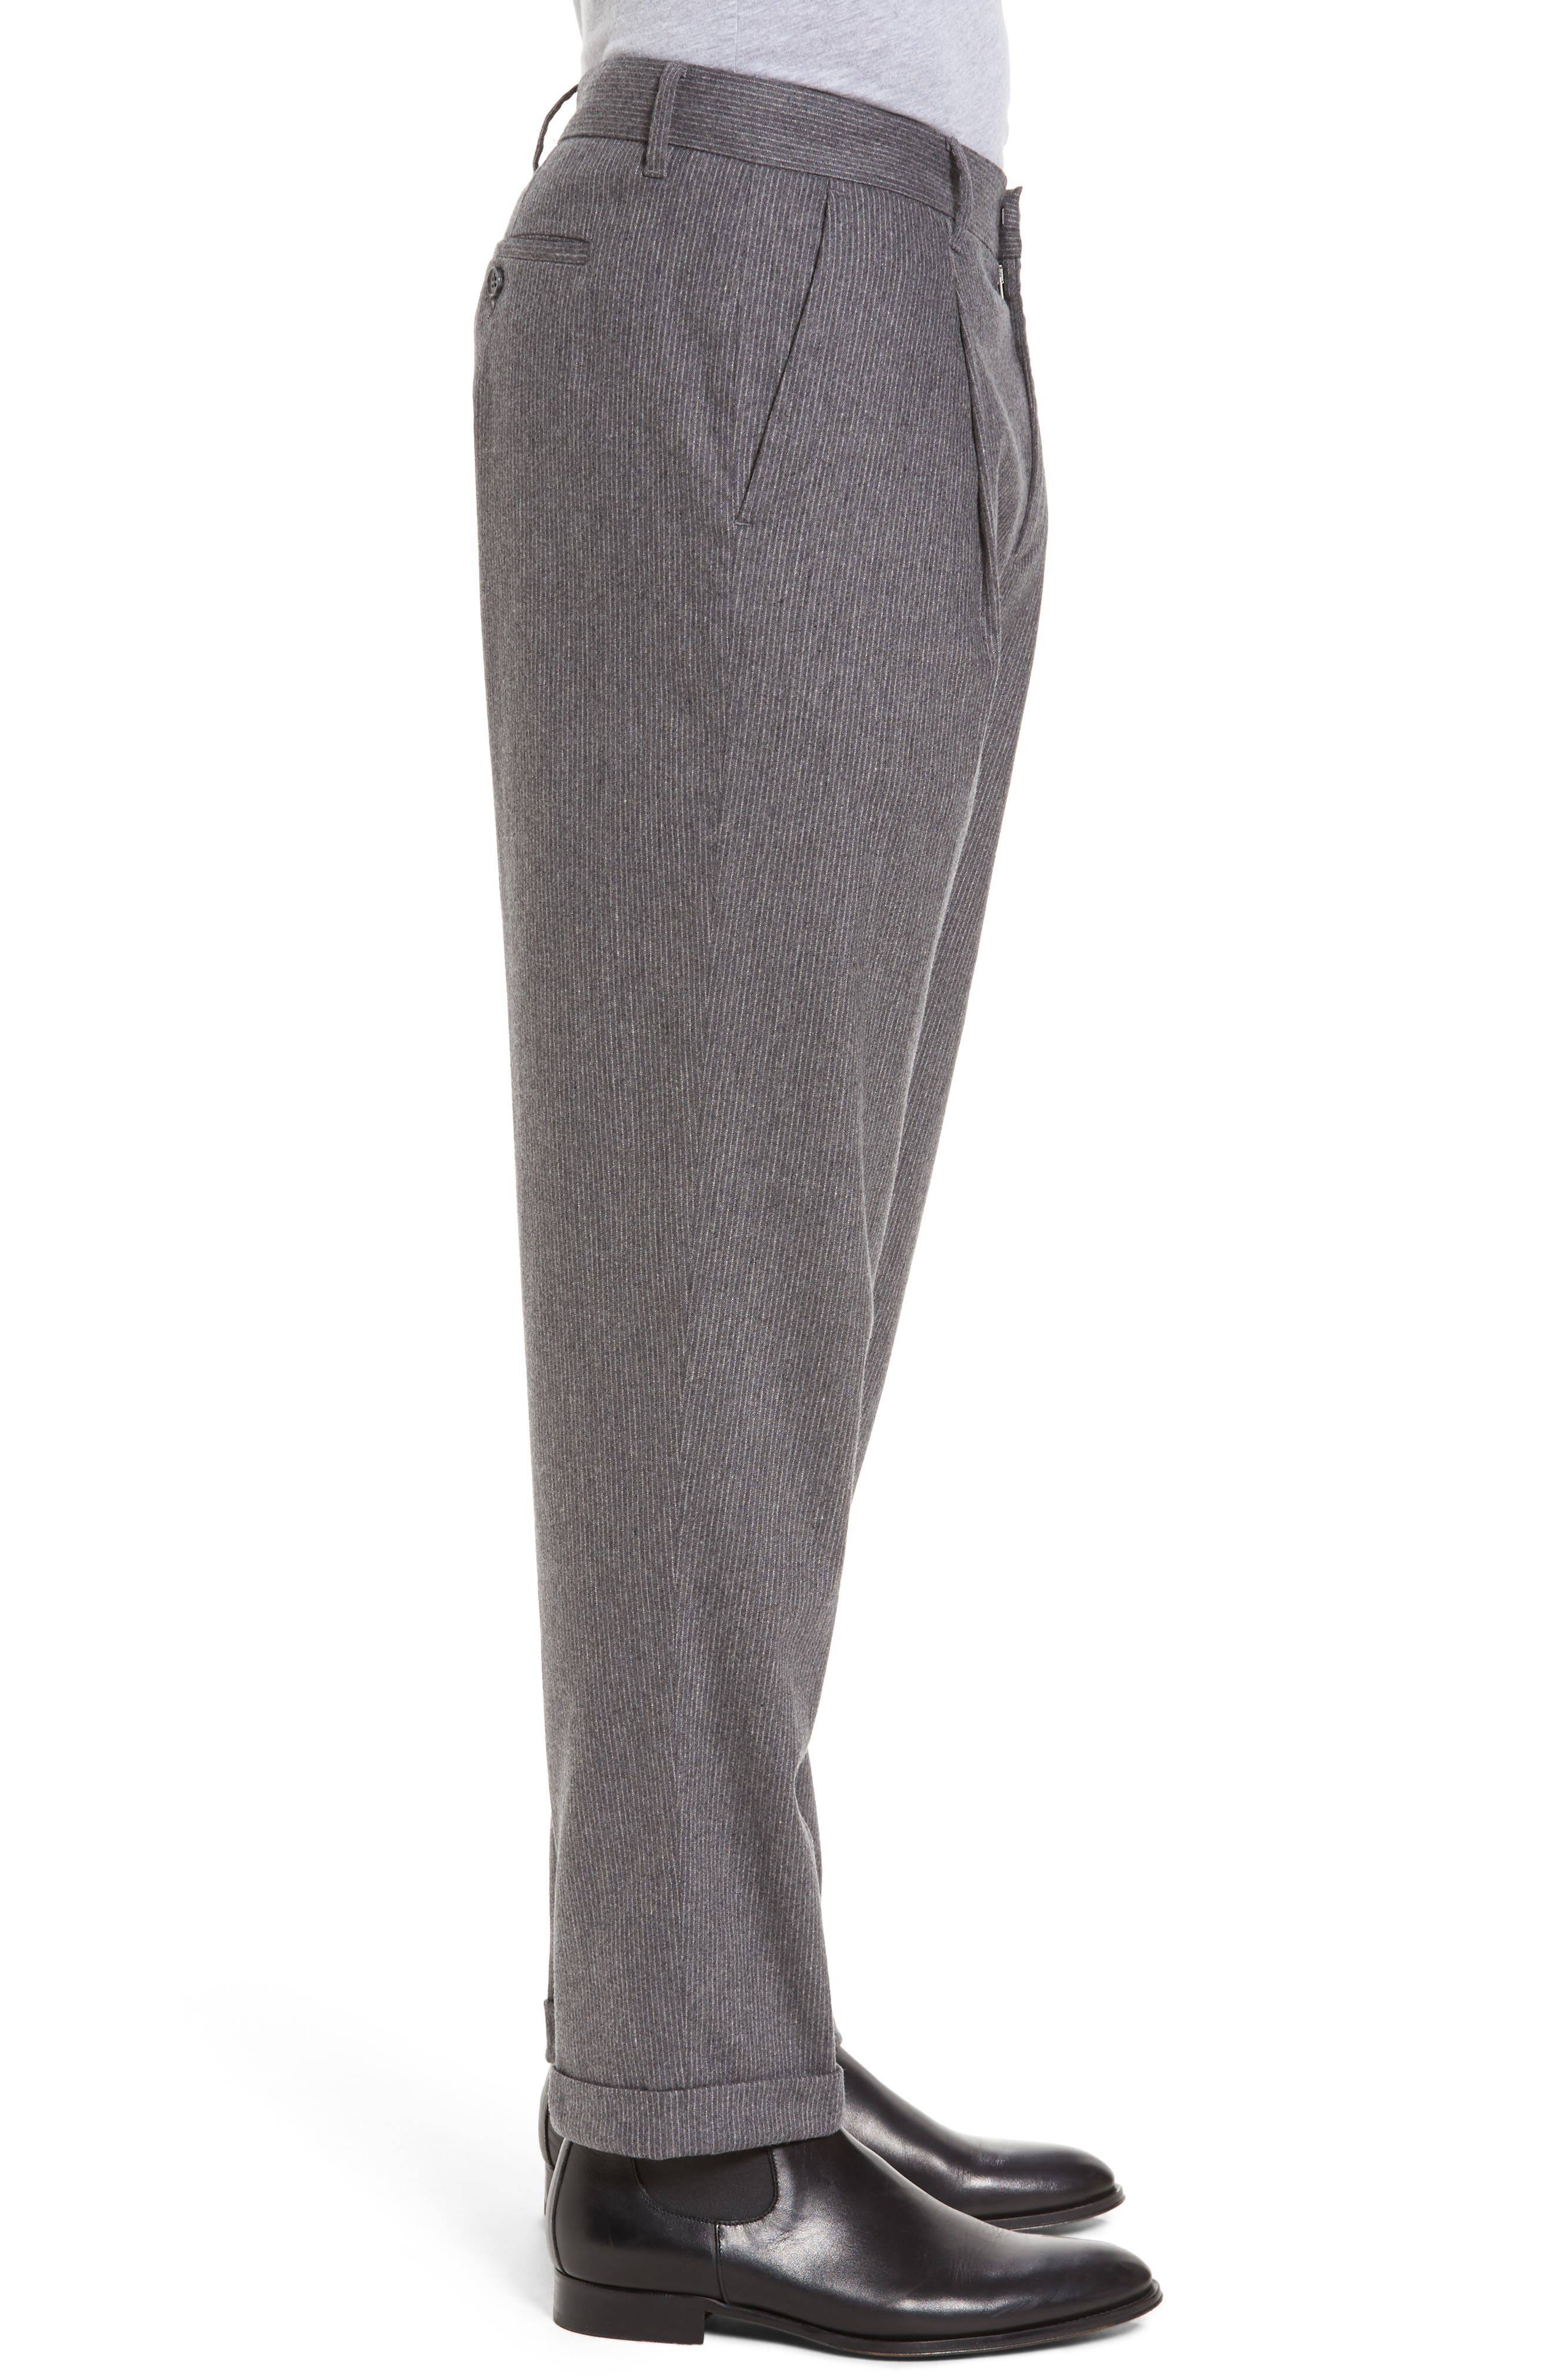 Rushmore Pinstripe Stretch Wool Blend Trousers,                             Alternate thumbnail 3, color,                             020